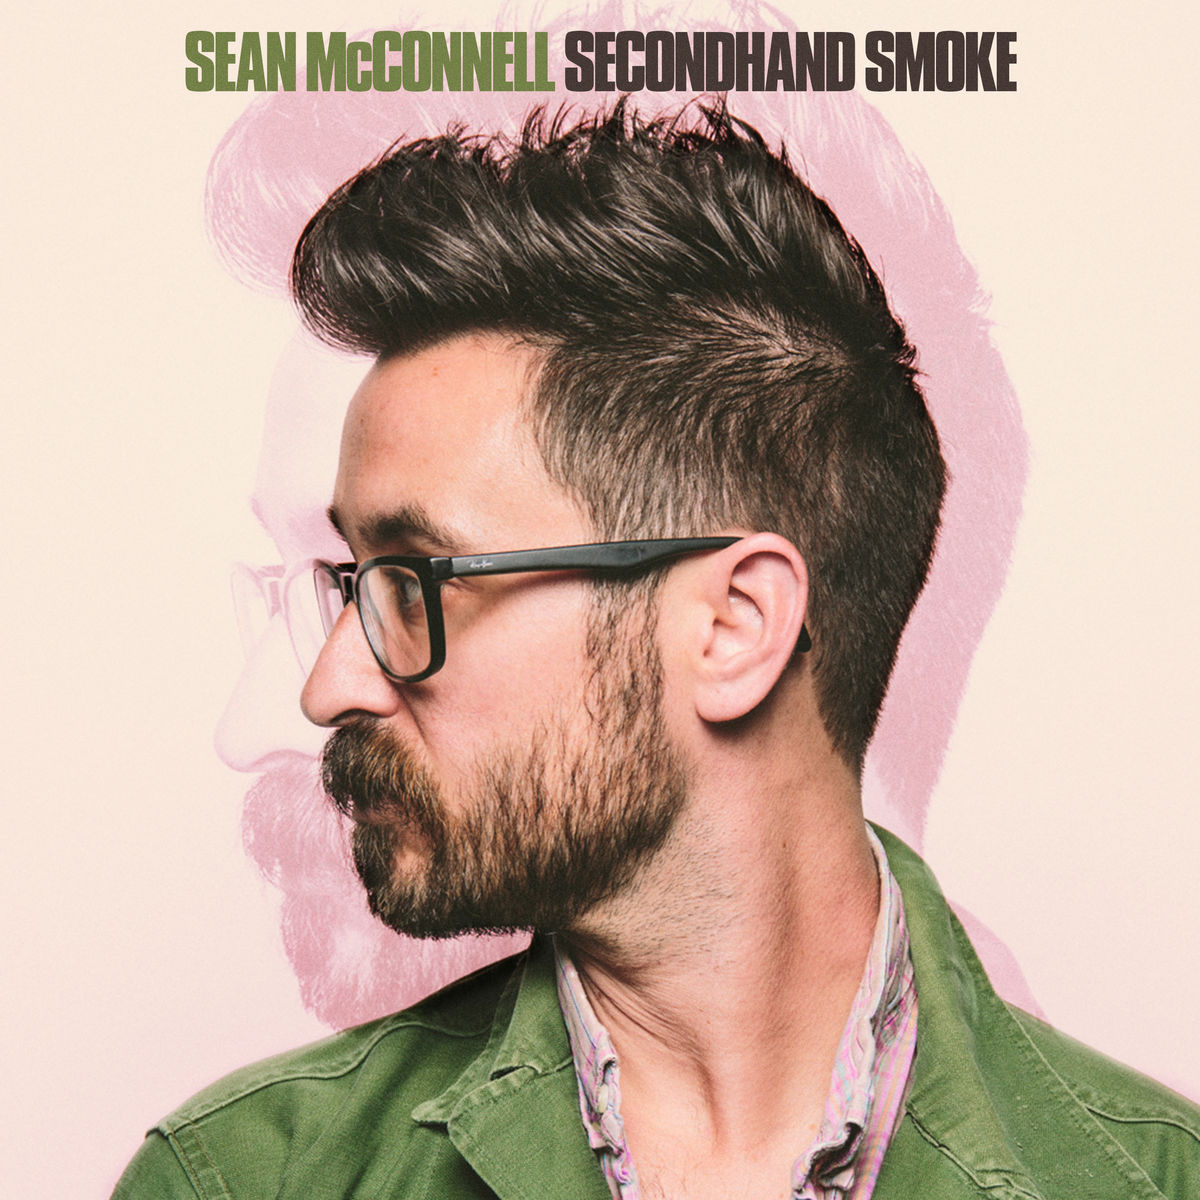 Sean McConnell - Secondhand Smoke (2019) [16 44 FLAC]